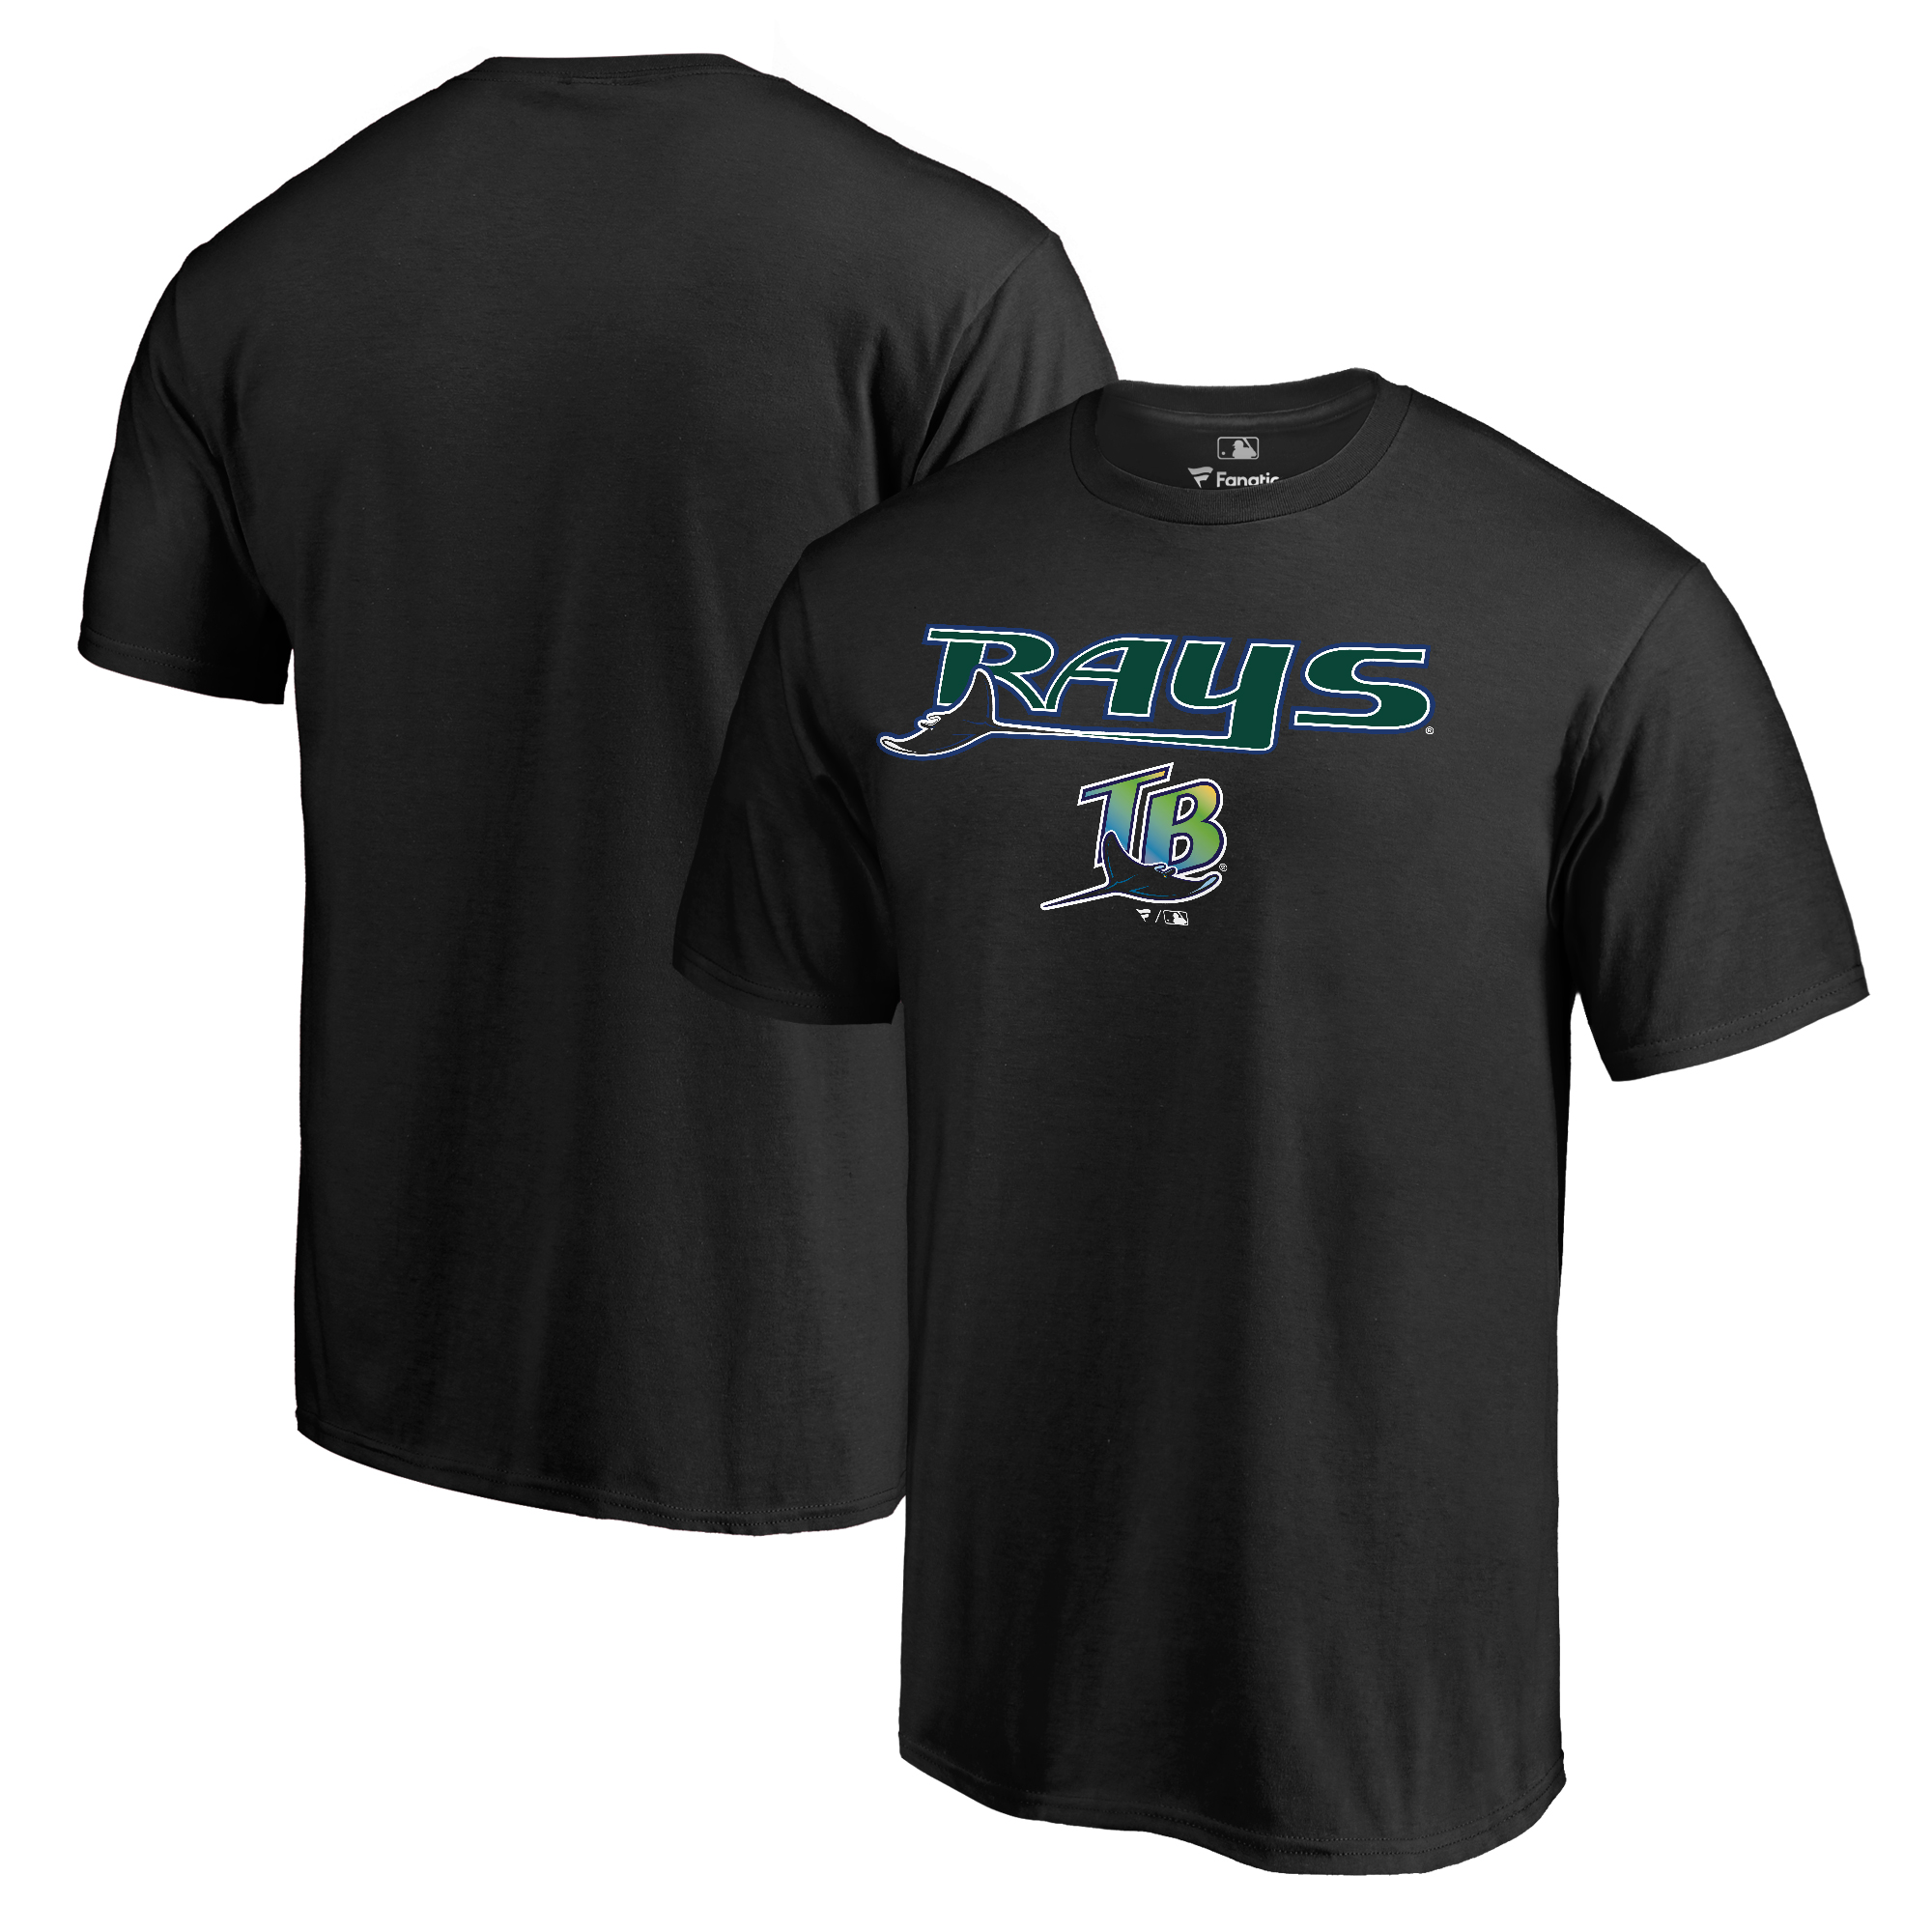 Tampa Bay Rays Fanatics Branded Big & Tall Cooperstown Collection Wahconah T-Shirt - Black